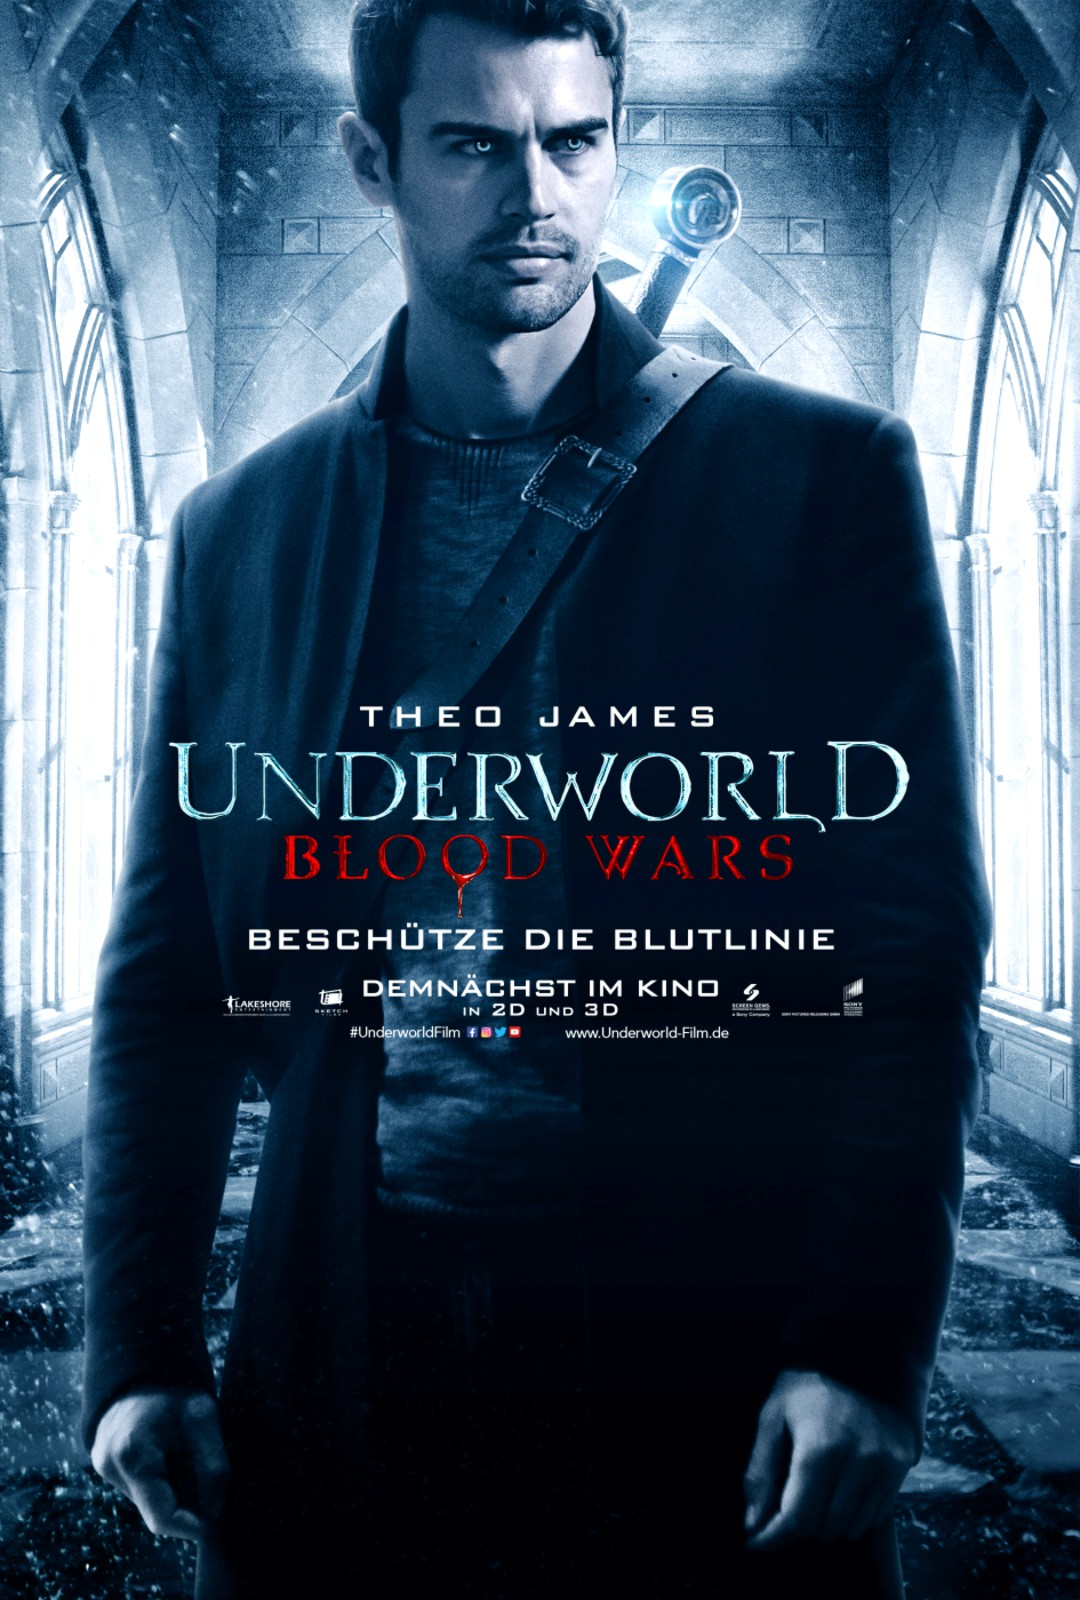 Underworld 5 - Blood Wars - Bild 6 von 7